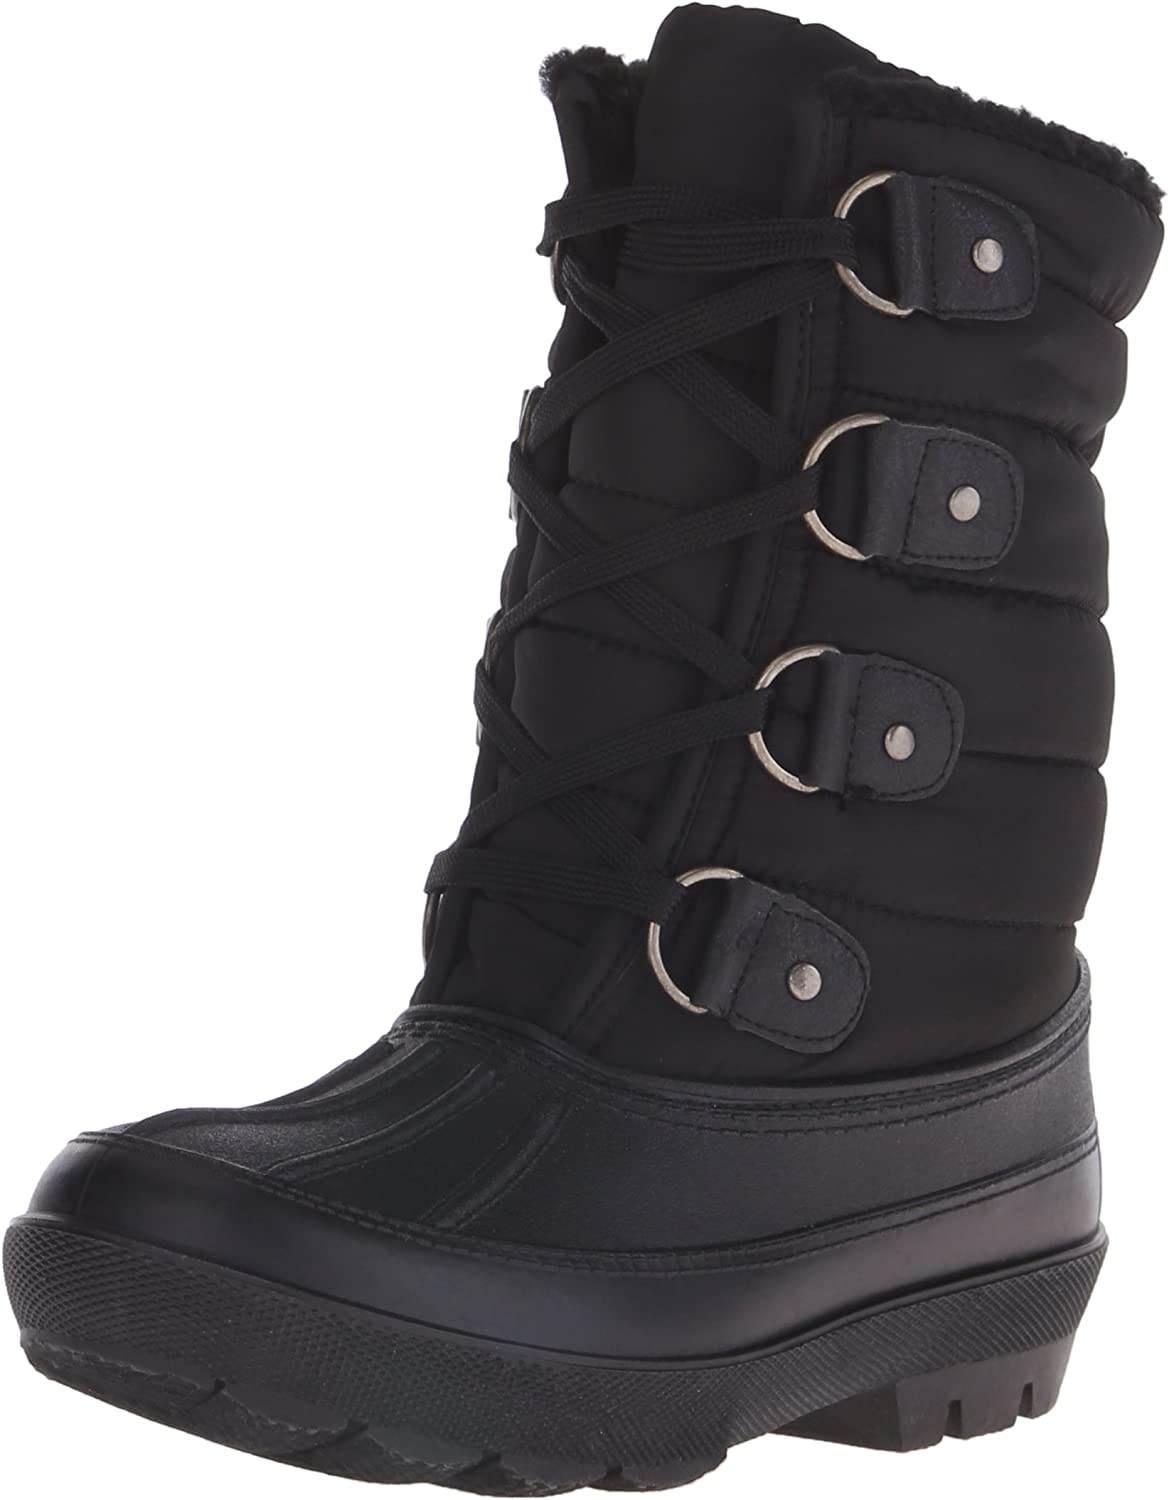 Dirty Laundry by Chinese Laundry Women's Big Bear Boot